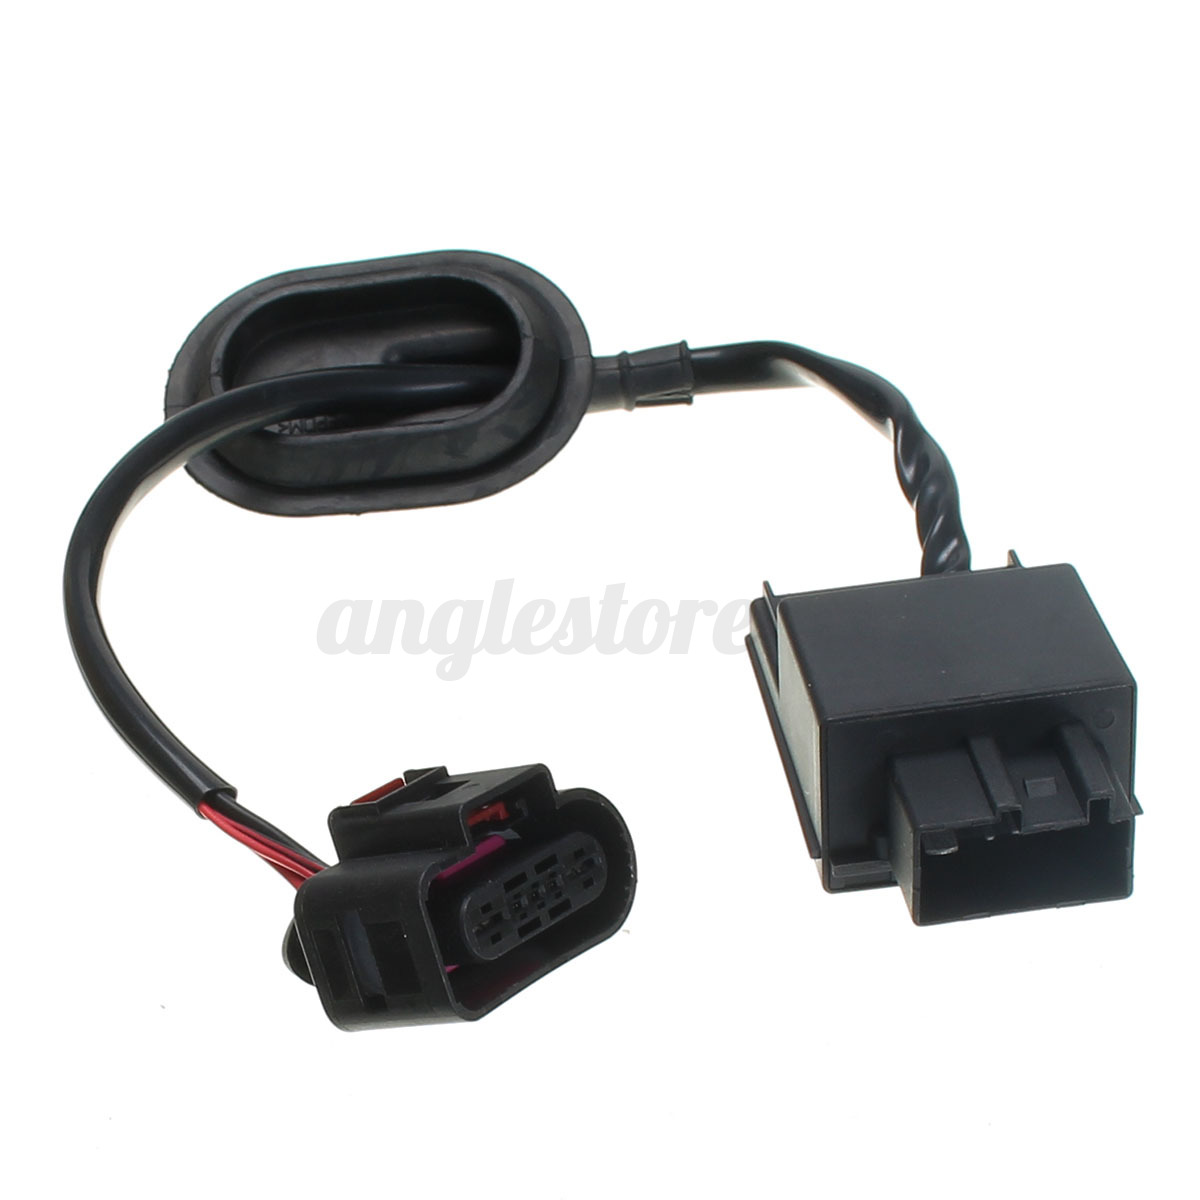 itm 432 module 3 slpword Used raymarine p79 airmar triducer transducer module seller assumes all responsibility for this listing shipping and handling this item will ship to united states,  will usually ship within 3 business days of receiving cleared payment - opens in a new window or tab return policy return policy details.